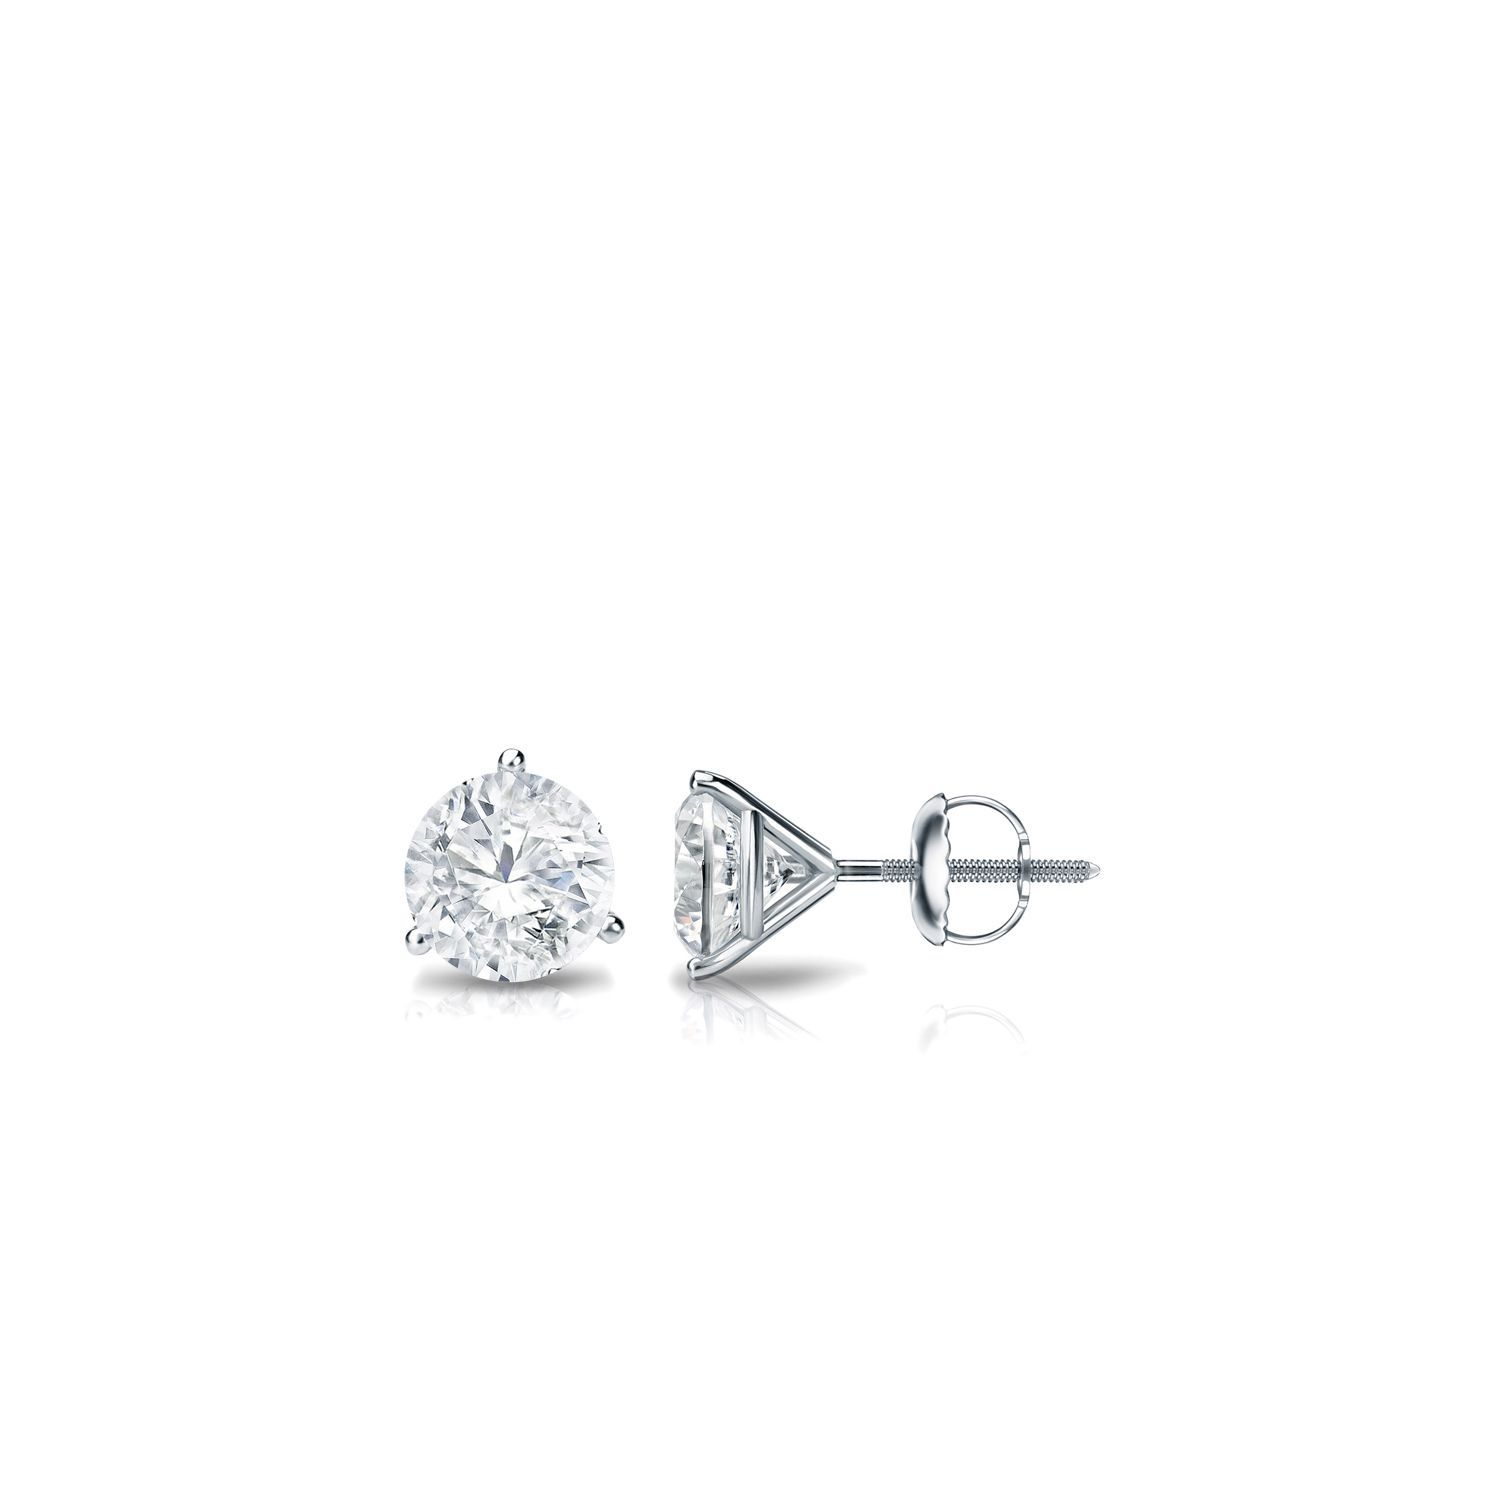 gold martini in shop earrings setting stud prong diamond white